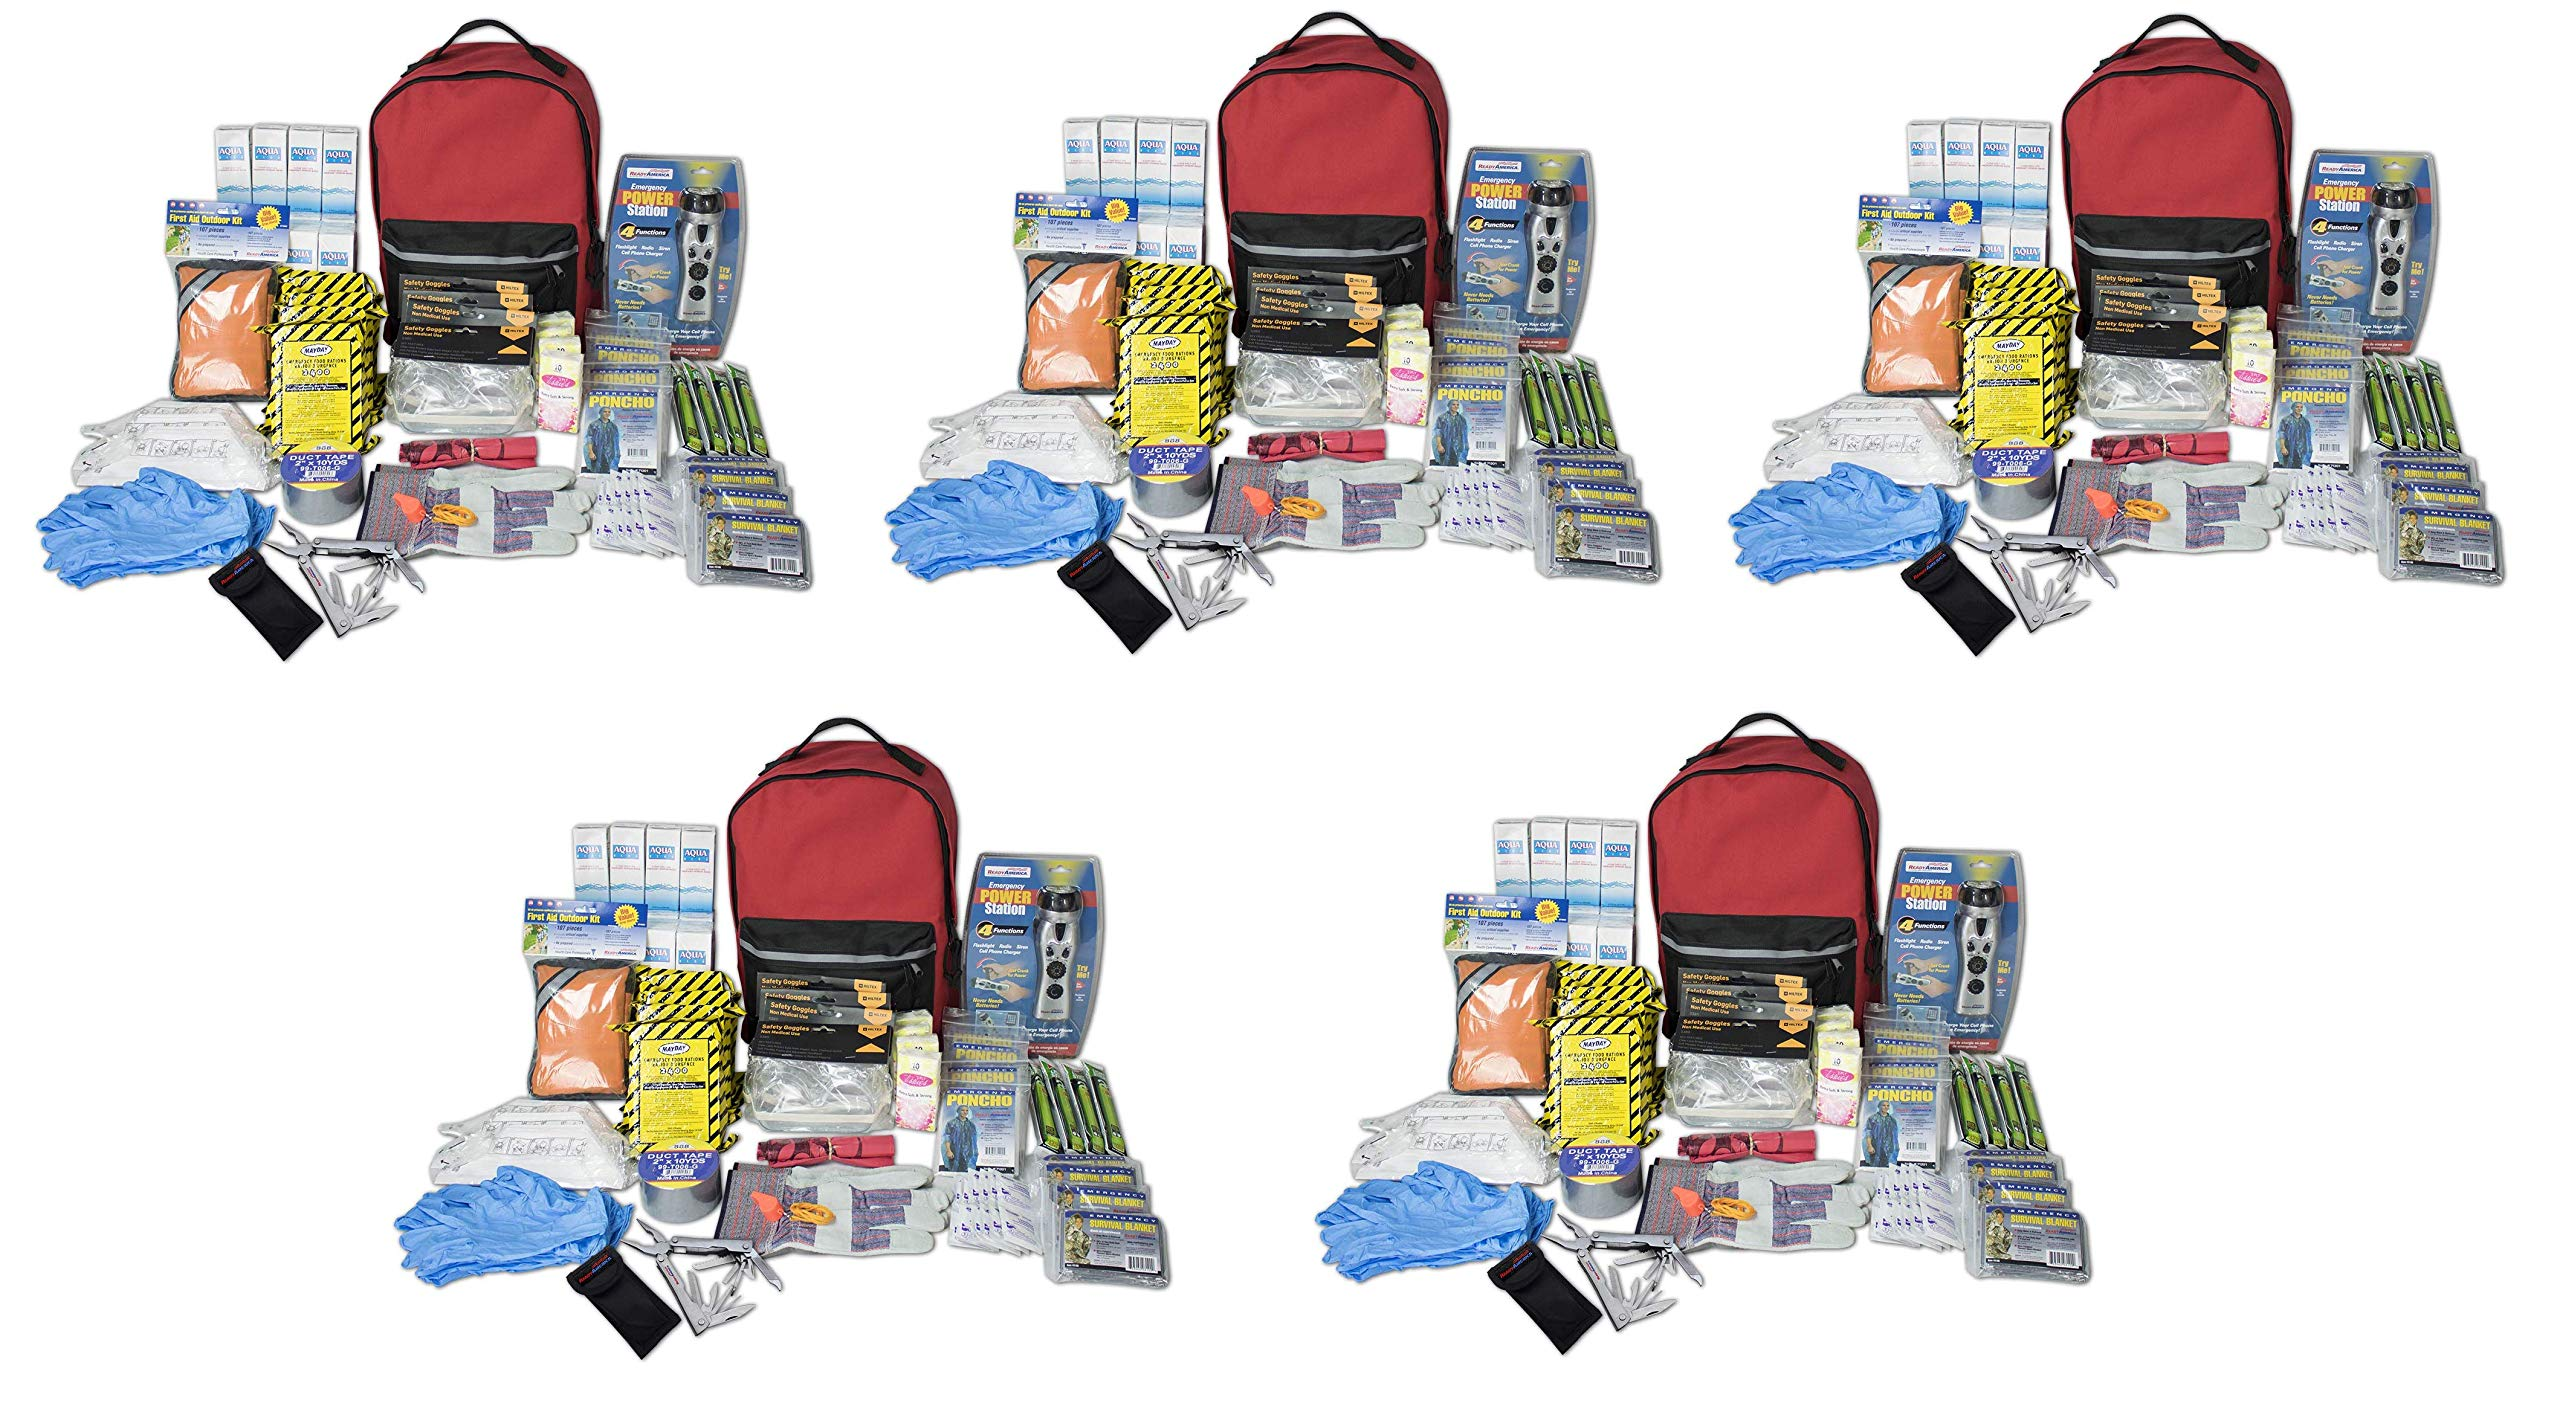 Ready America 70385 Deluxe Emergency Kit 4 Person Backpack (Fivе Расk)